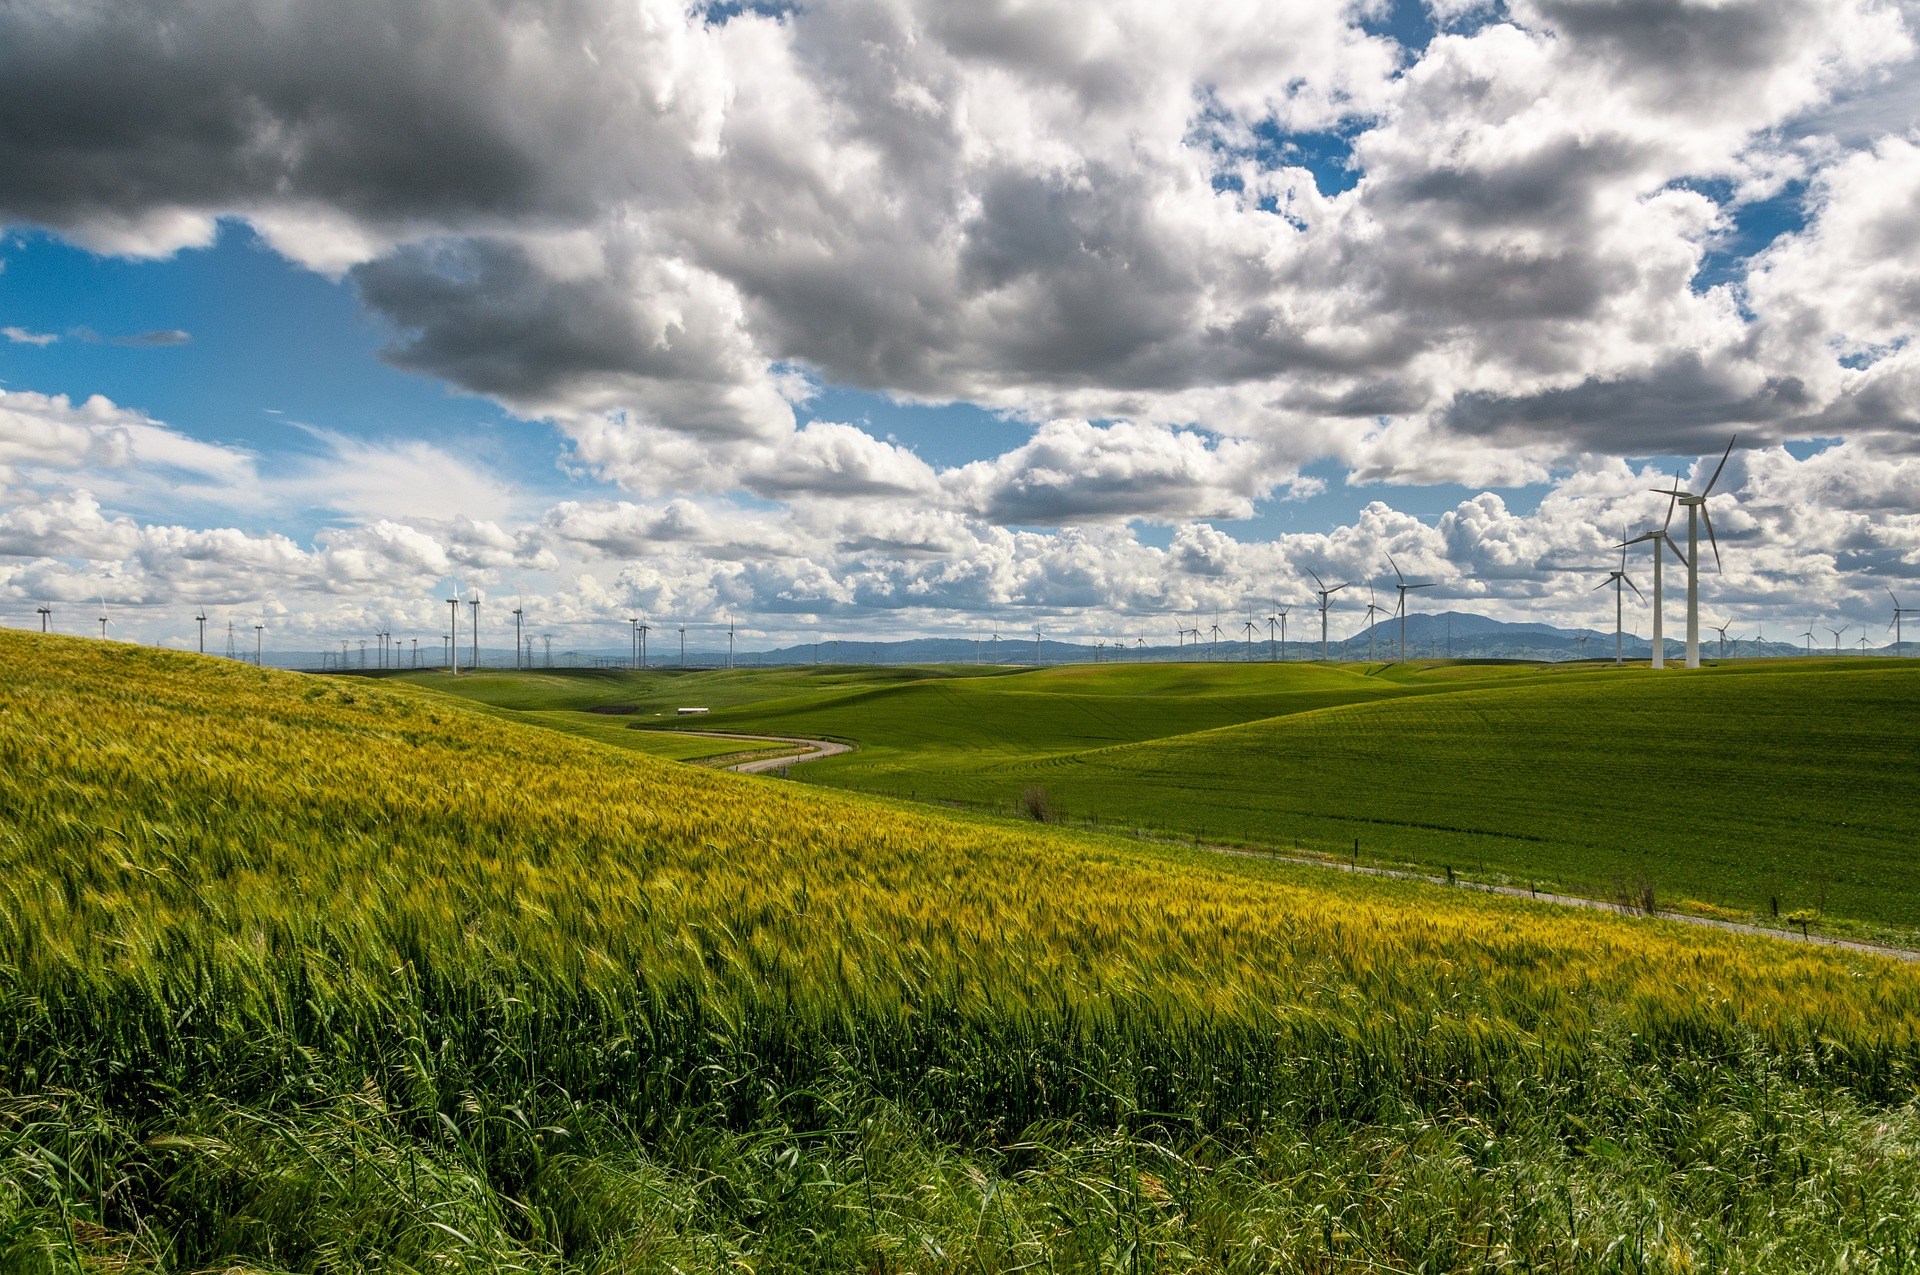 Wind Farm-Image by Free-Photos from Pixabay